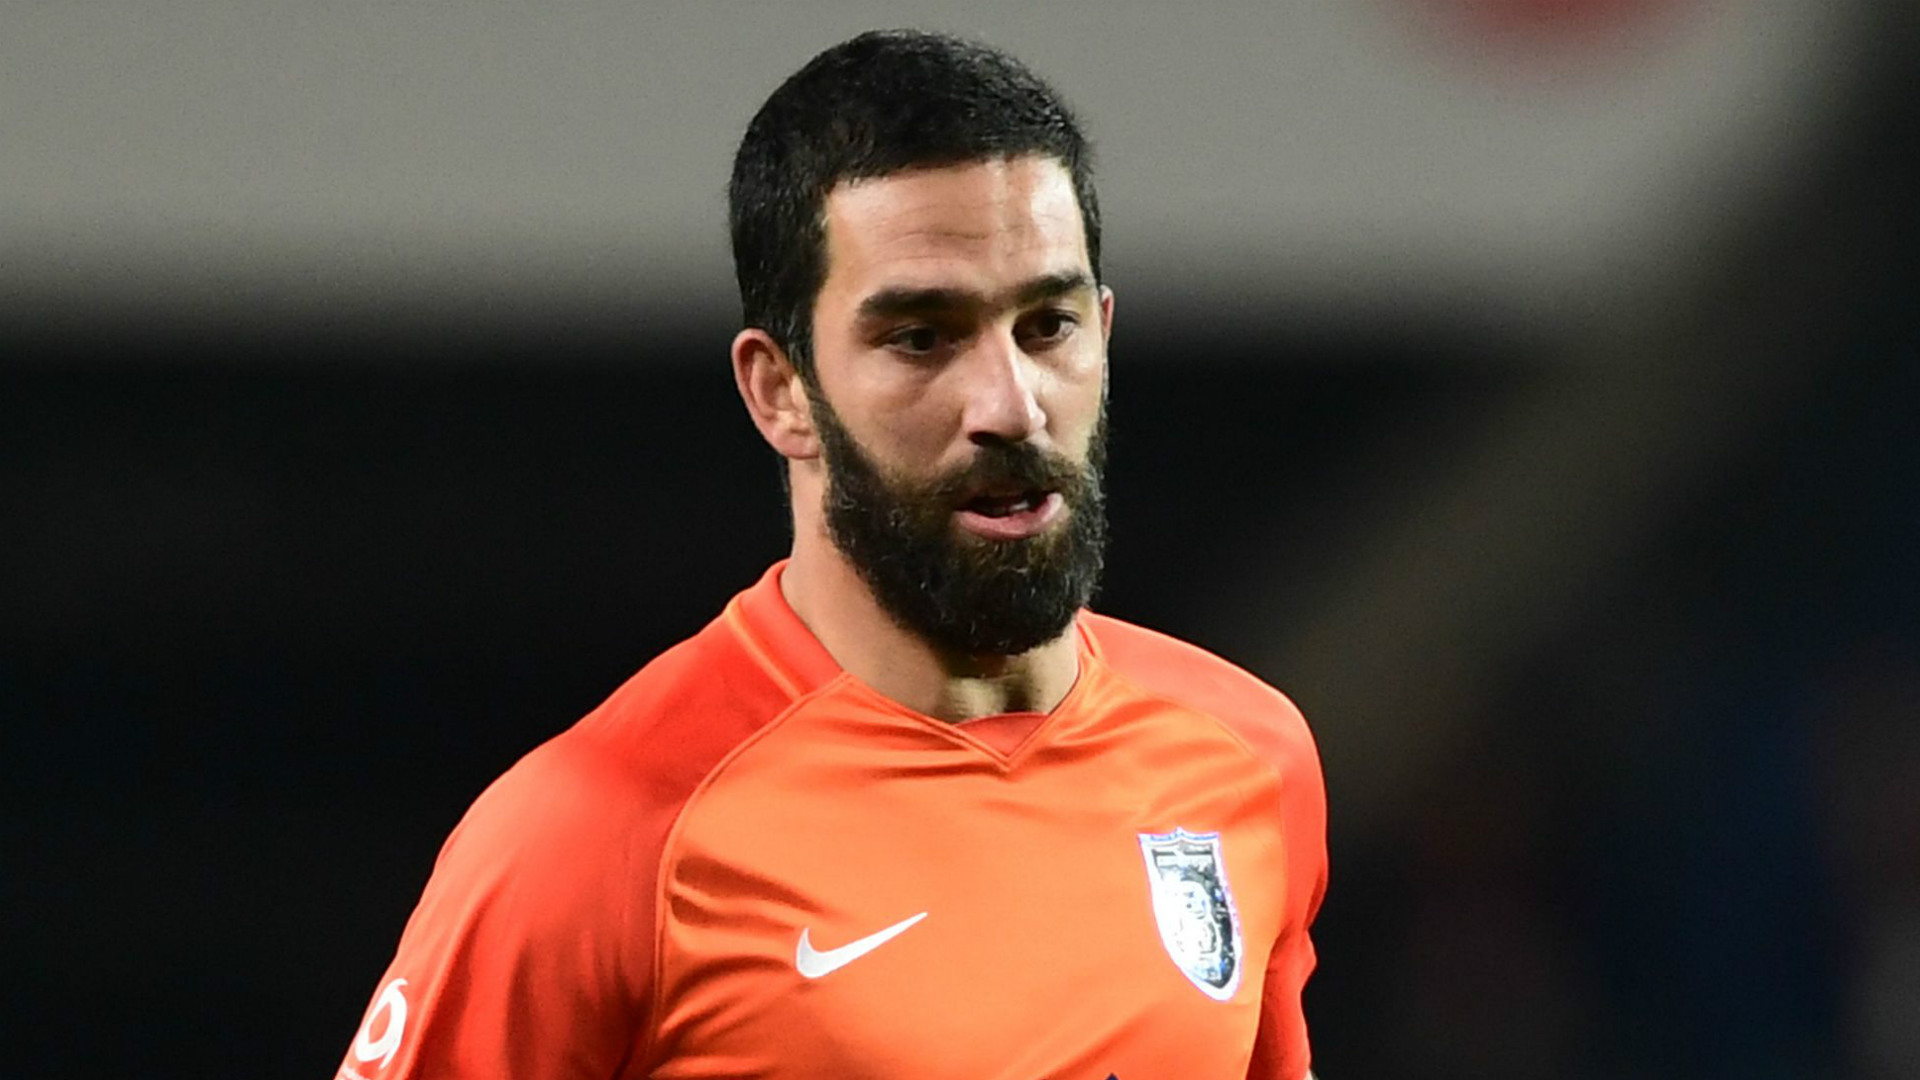 Barcelona midfielder Arda Turan charged over alleged fight with Turkish singer